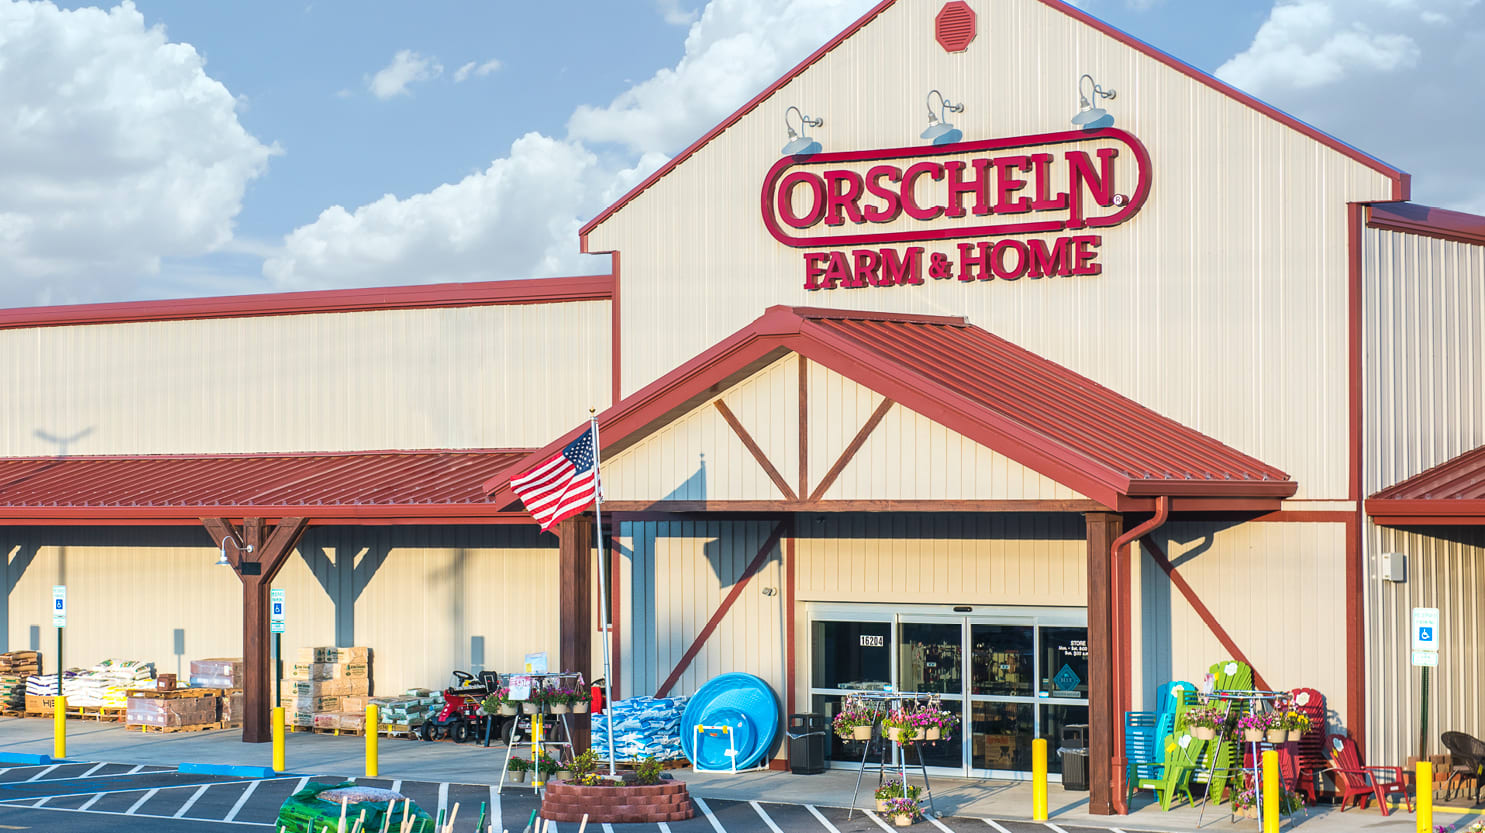 Front view of Orscheln Farm & Home Store in Mountain Home, Arkansas 72653